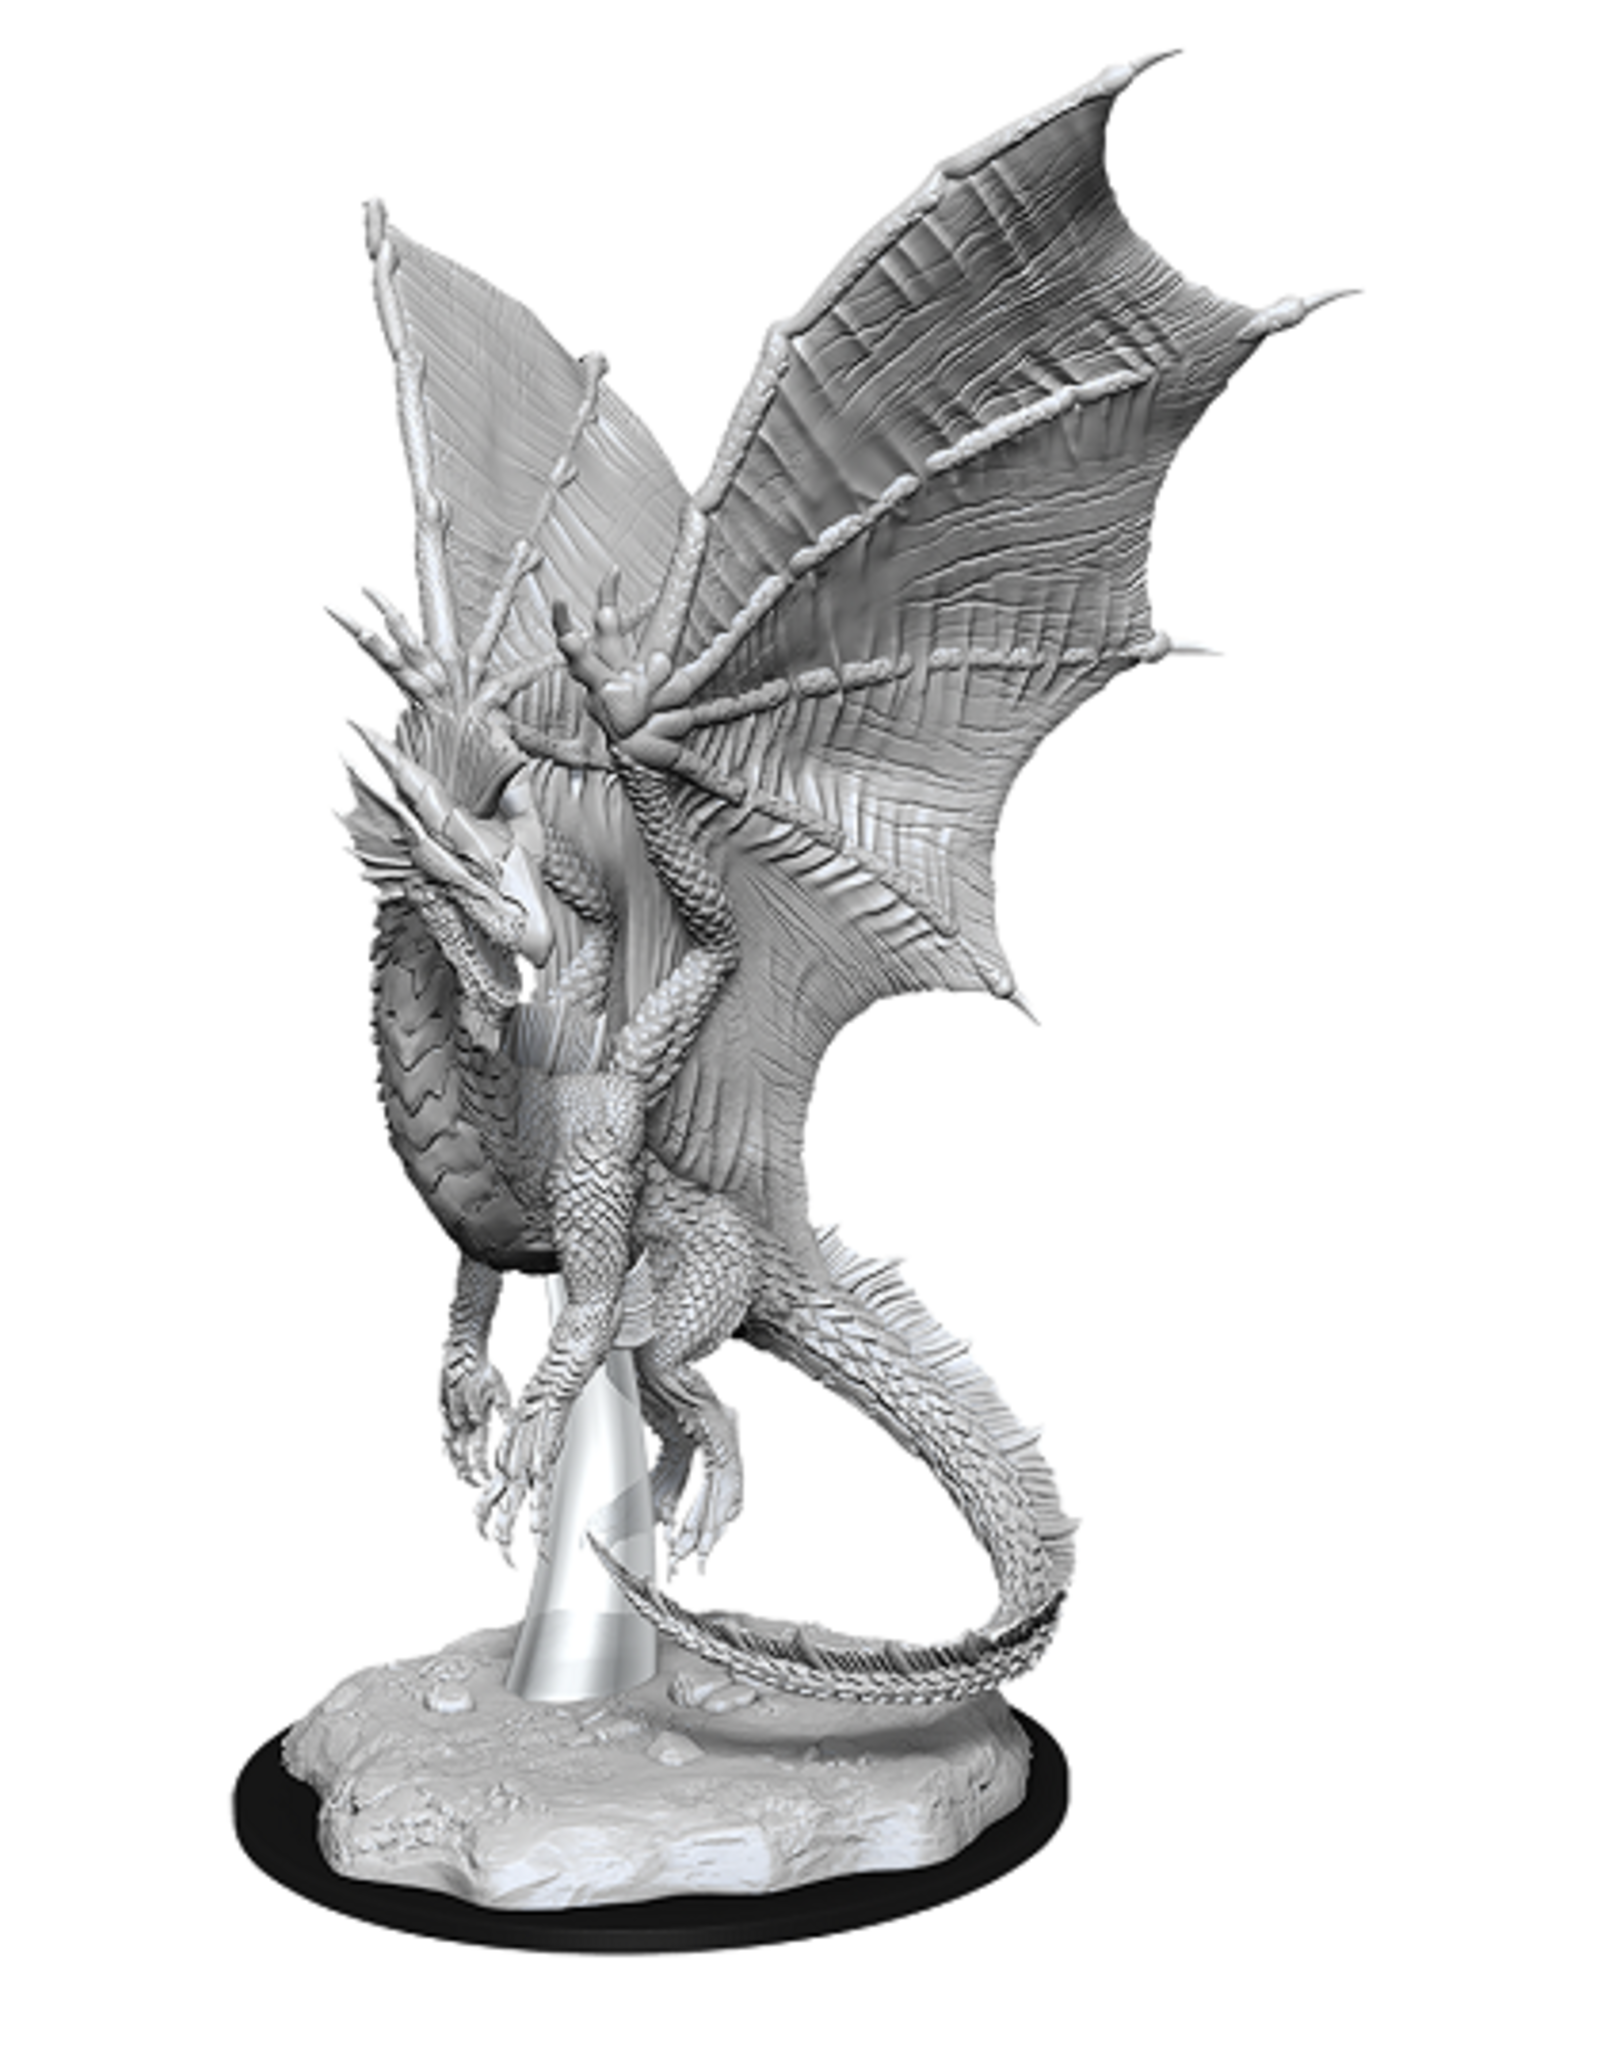 WIZKIDS DND UNPAINTED MINIS: YOUNG SILVER DRAGON